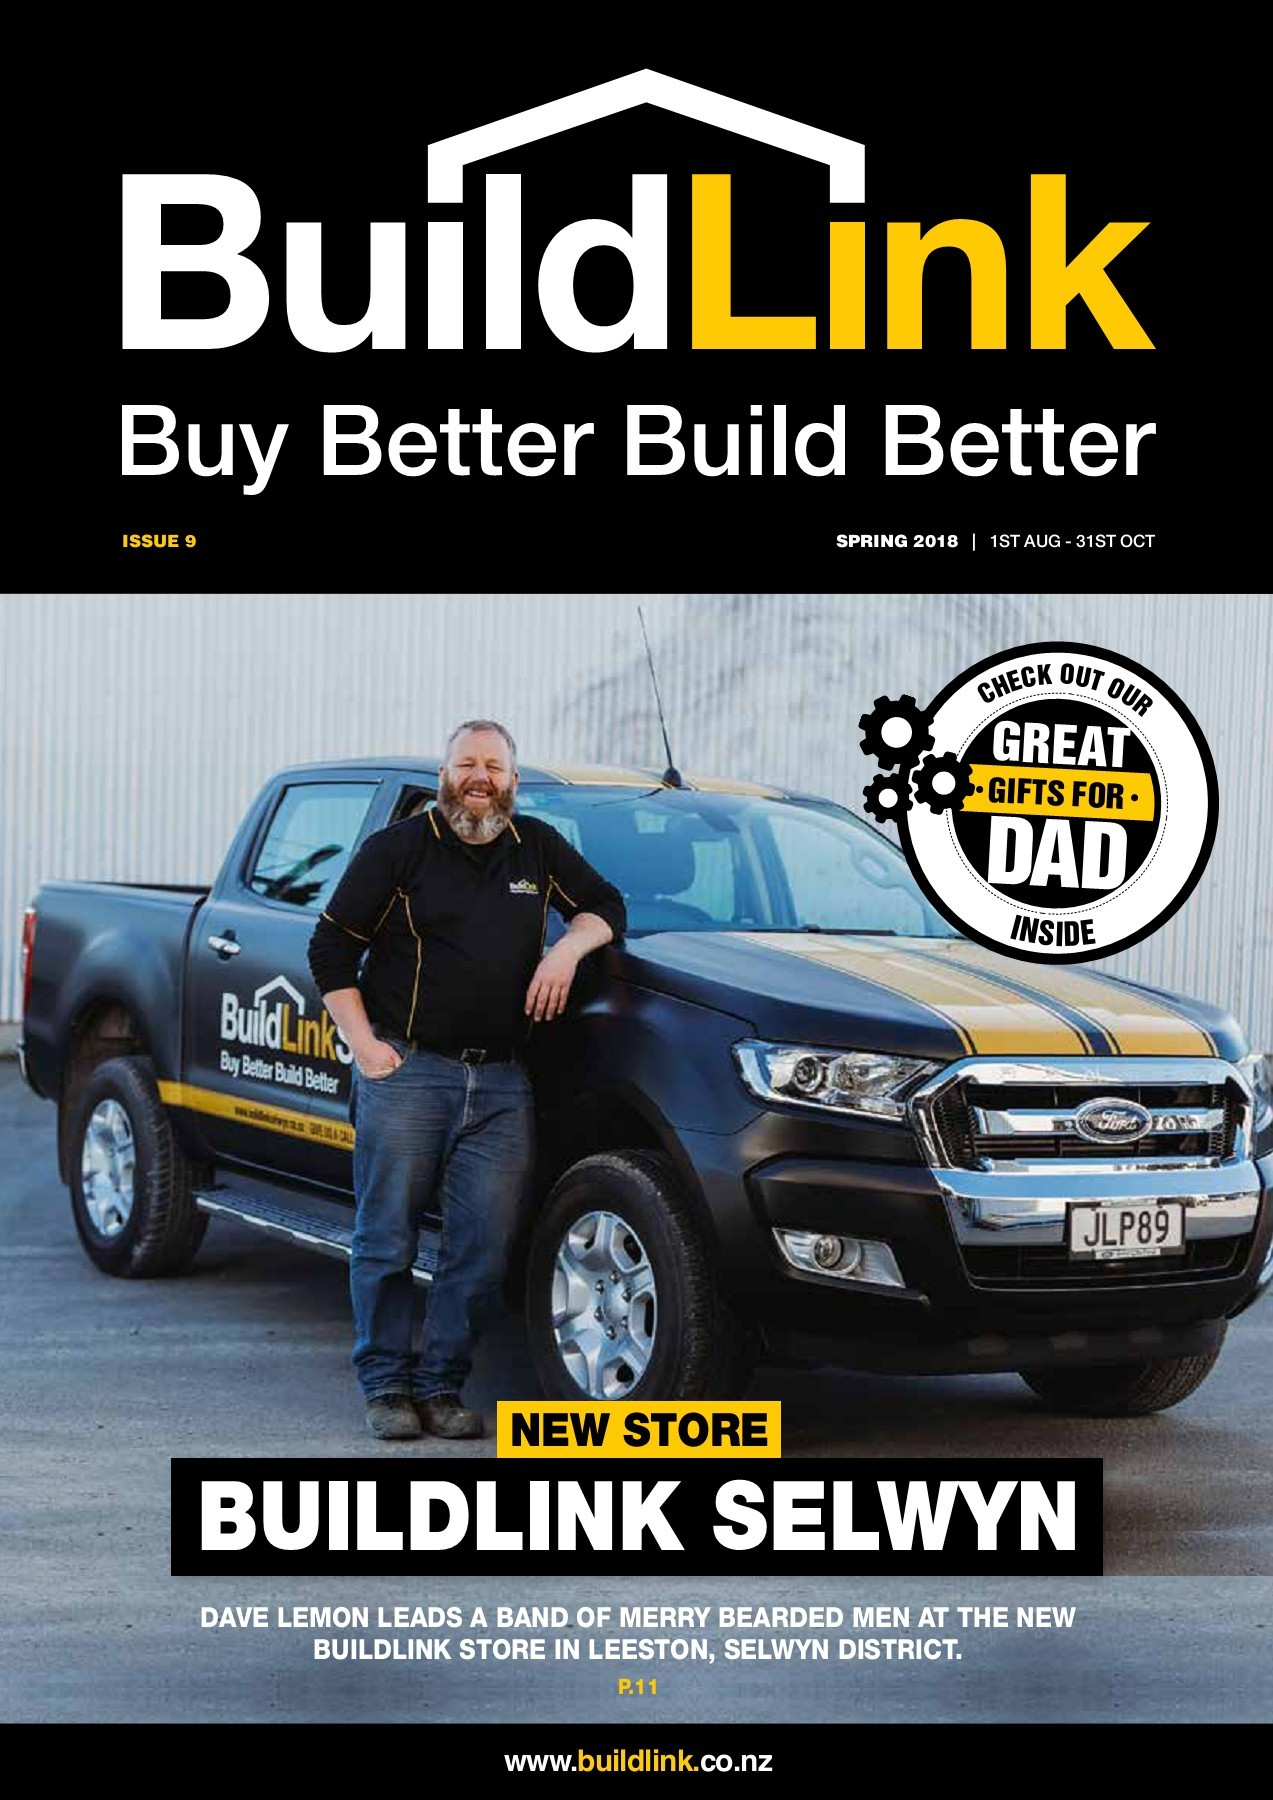 Buildlink buy better build better take a look at these buildlink specials dont forget individual stores may also have their own specials solutioingenieria Image collections